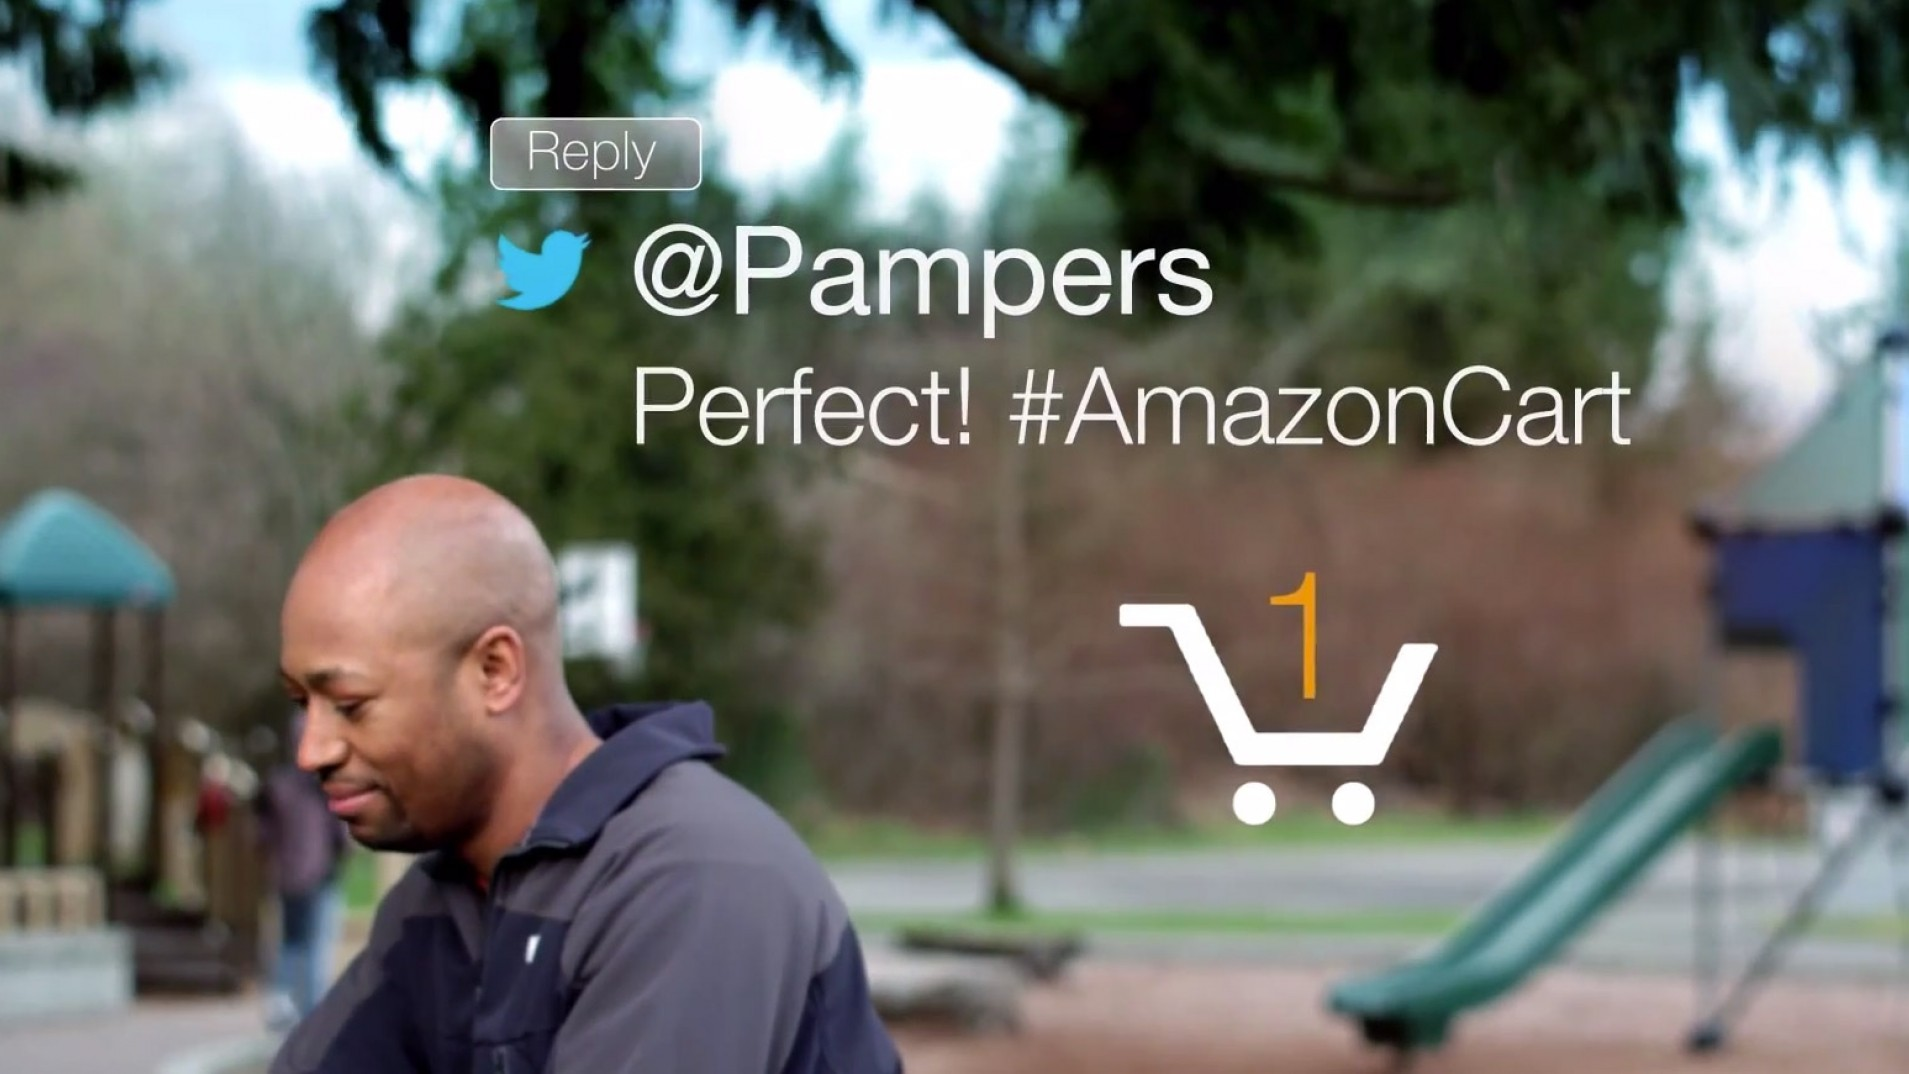 With #AmazonCart, the Junk You Buy Is Now Part of Your Personal Brand